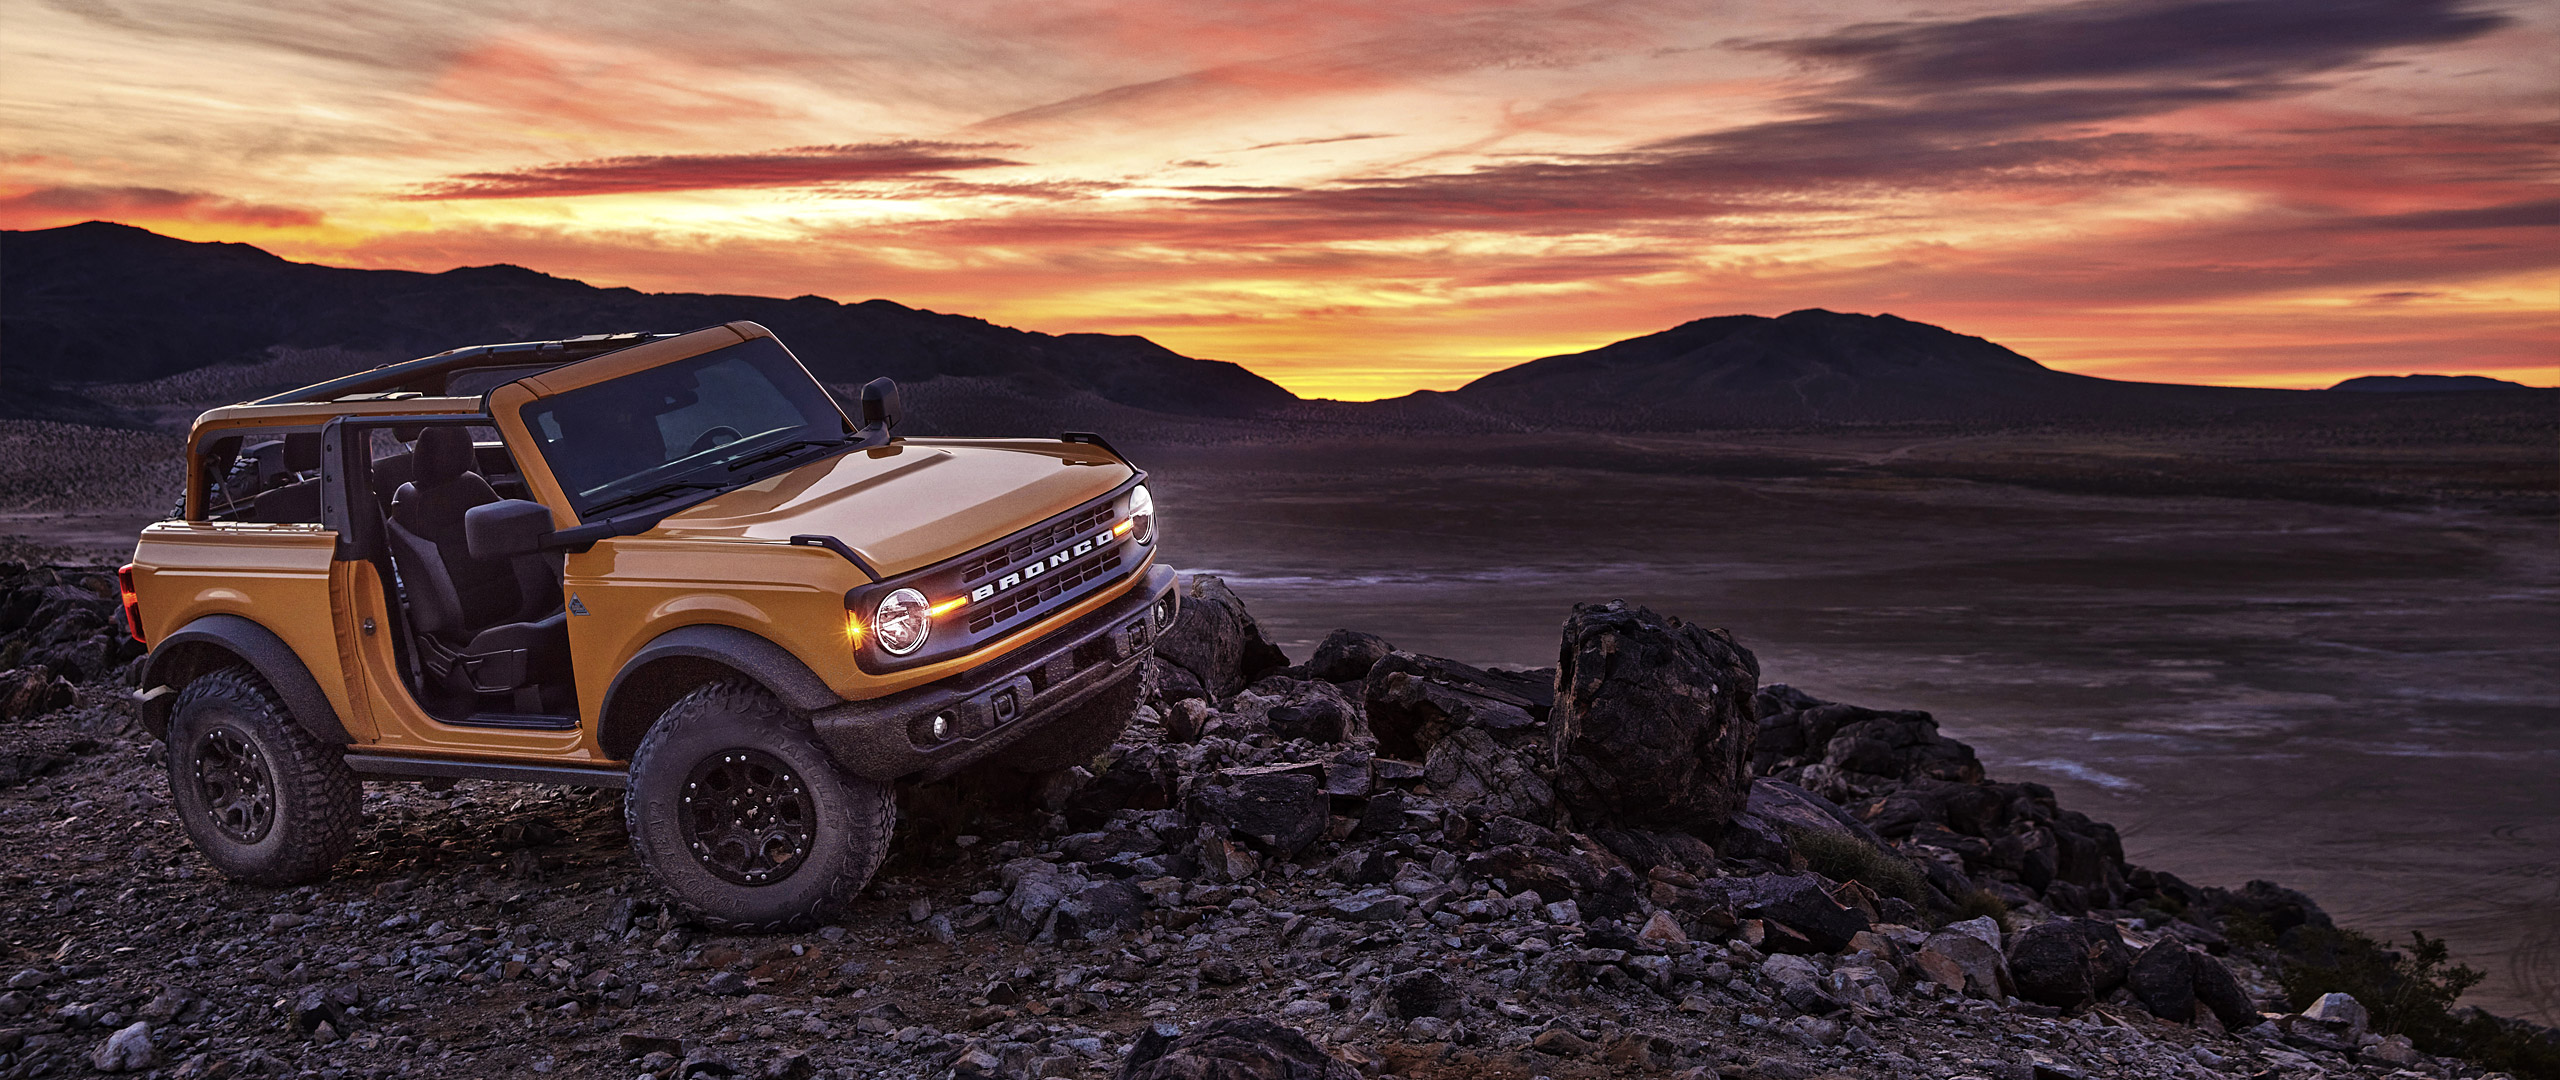 2021 Ford Bronco Wallpaper.